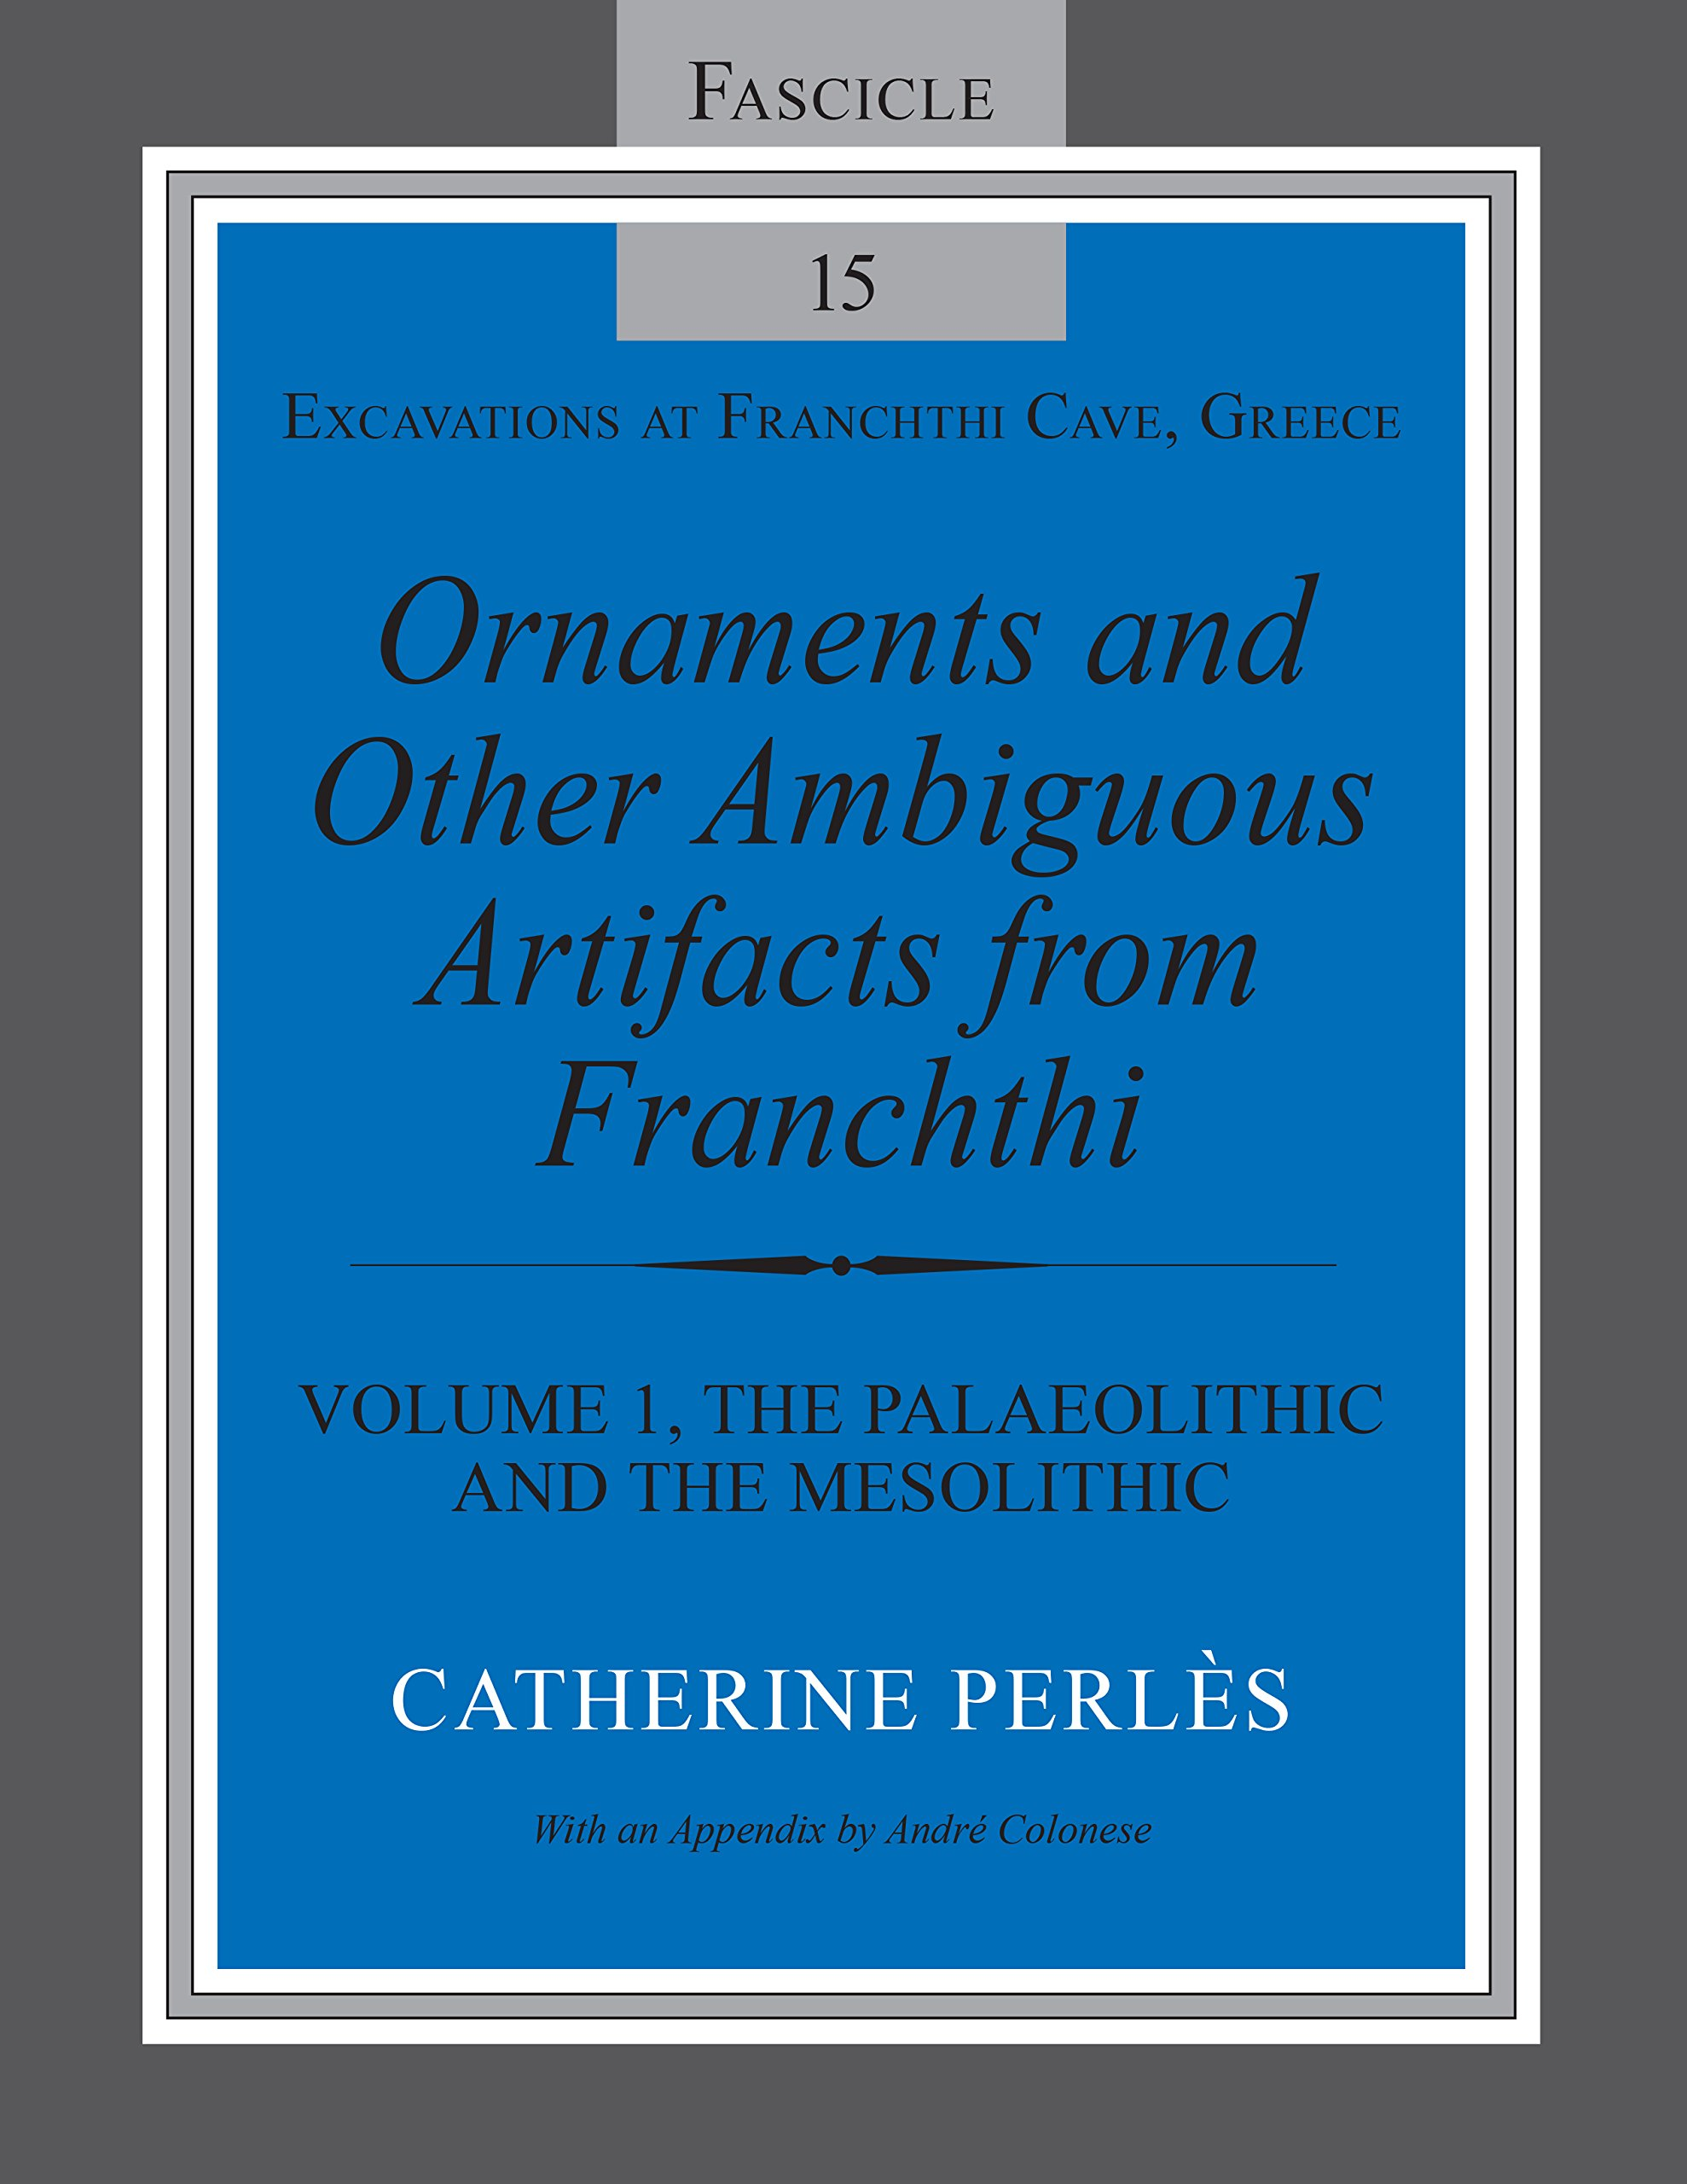 Ornaments and Other Ambiguous Artifacts from Franchthi: Volume 1, The Palaeolithic and the Mesolithic (Excavations at Franchthi Cave, Greece Book 15)